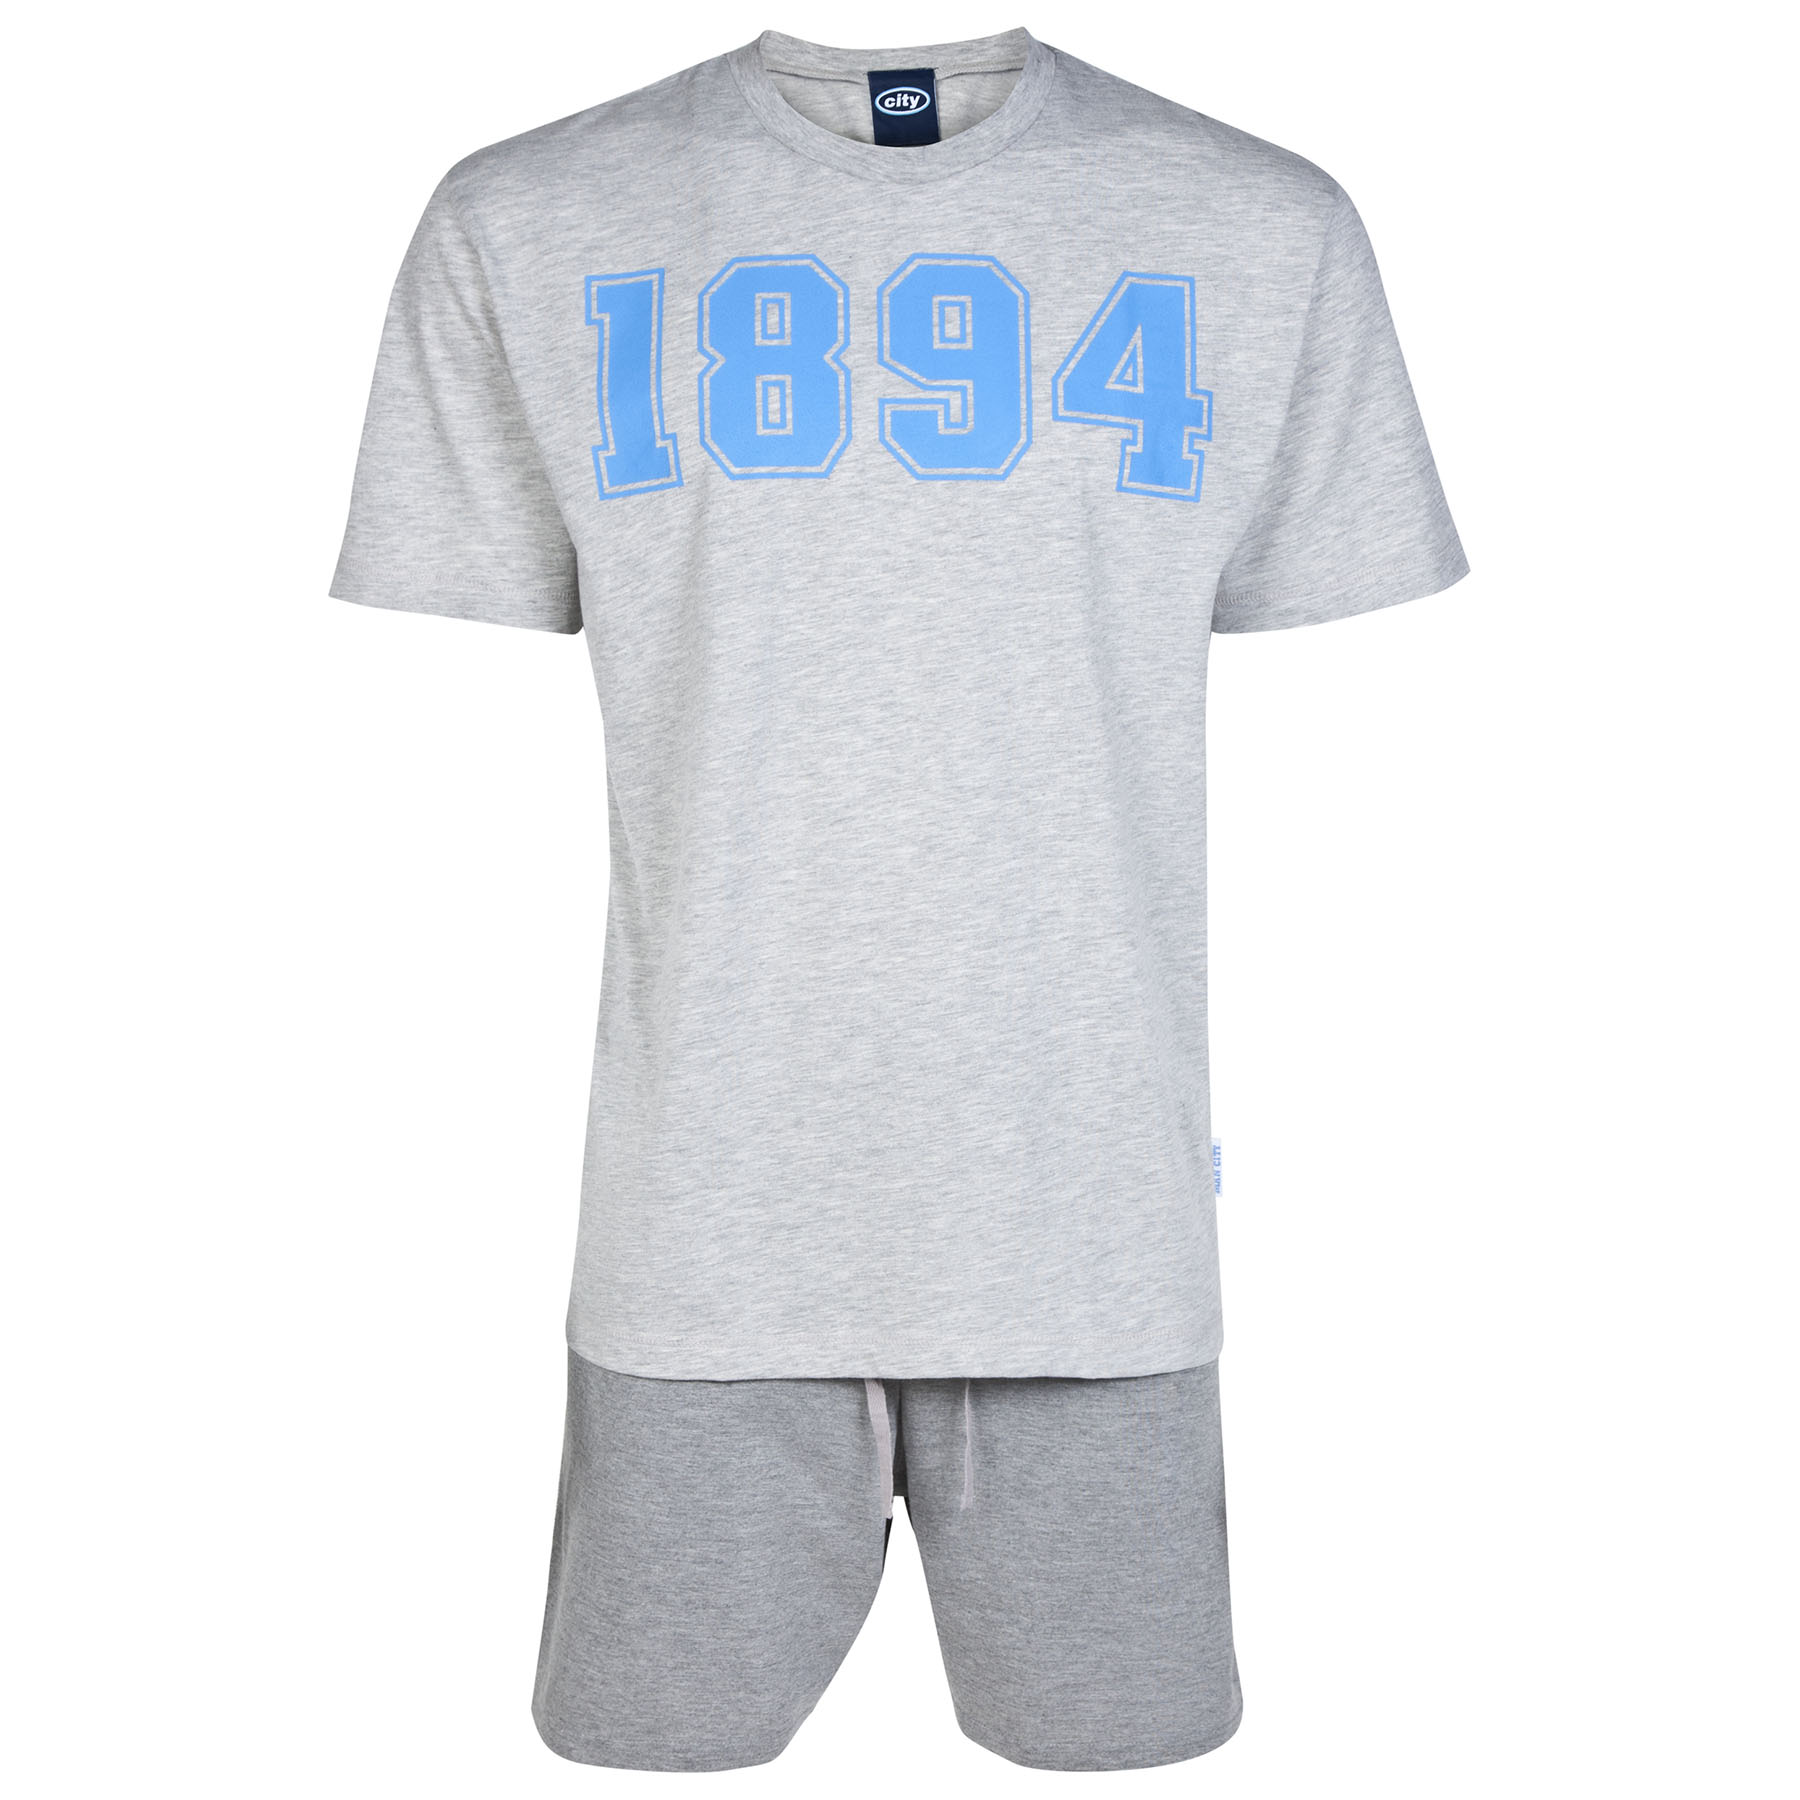 Manchester City Pyjamas - Grey - Mens